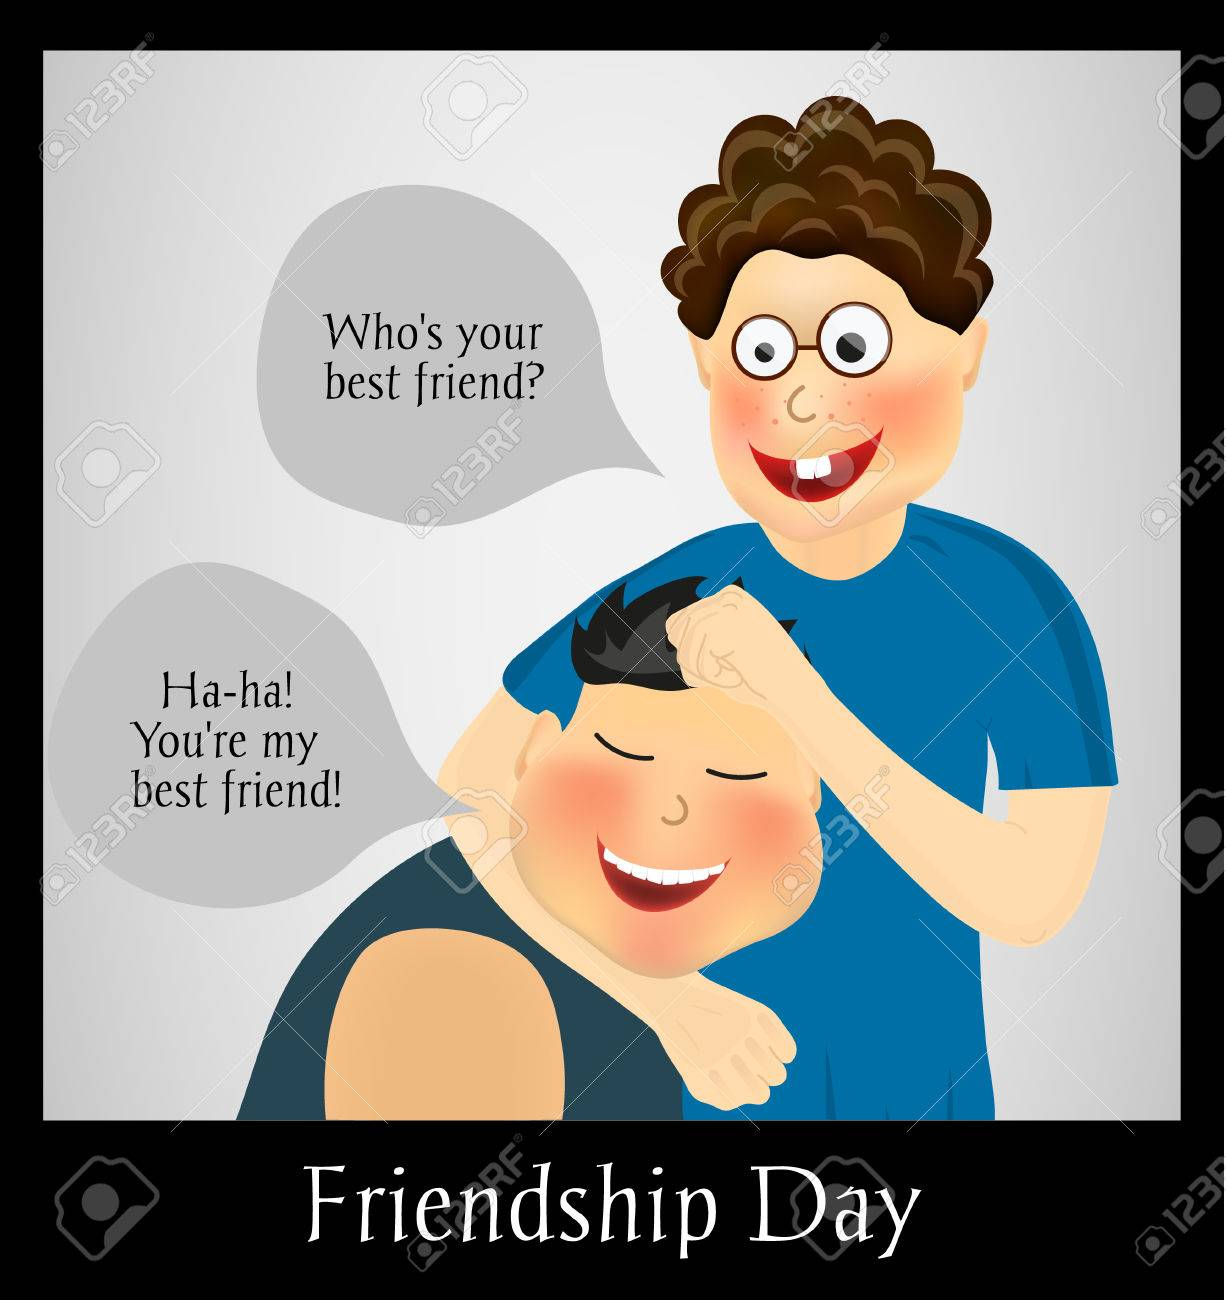 Friendship Day International Holiday Two Best Friends Funny